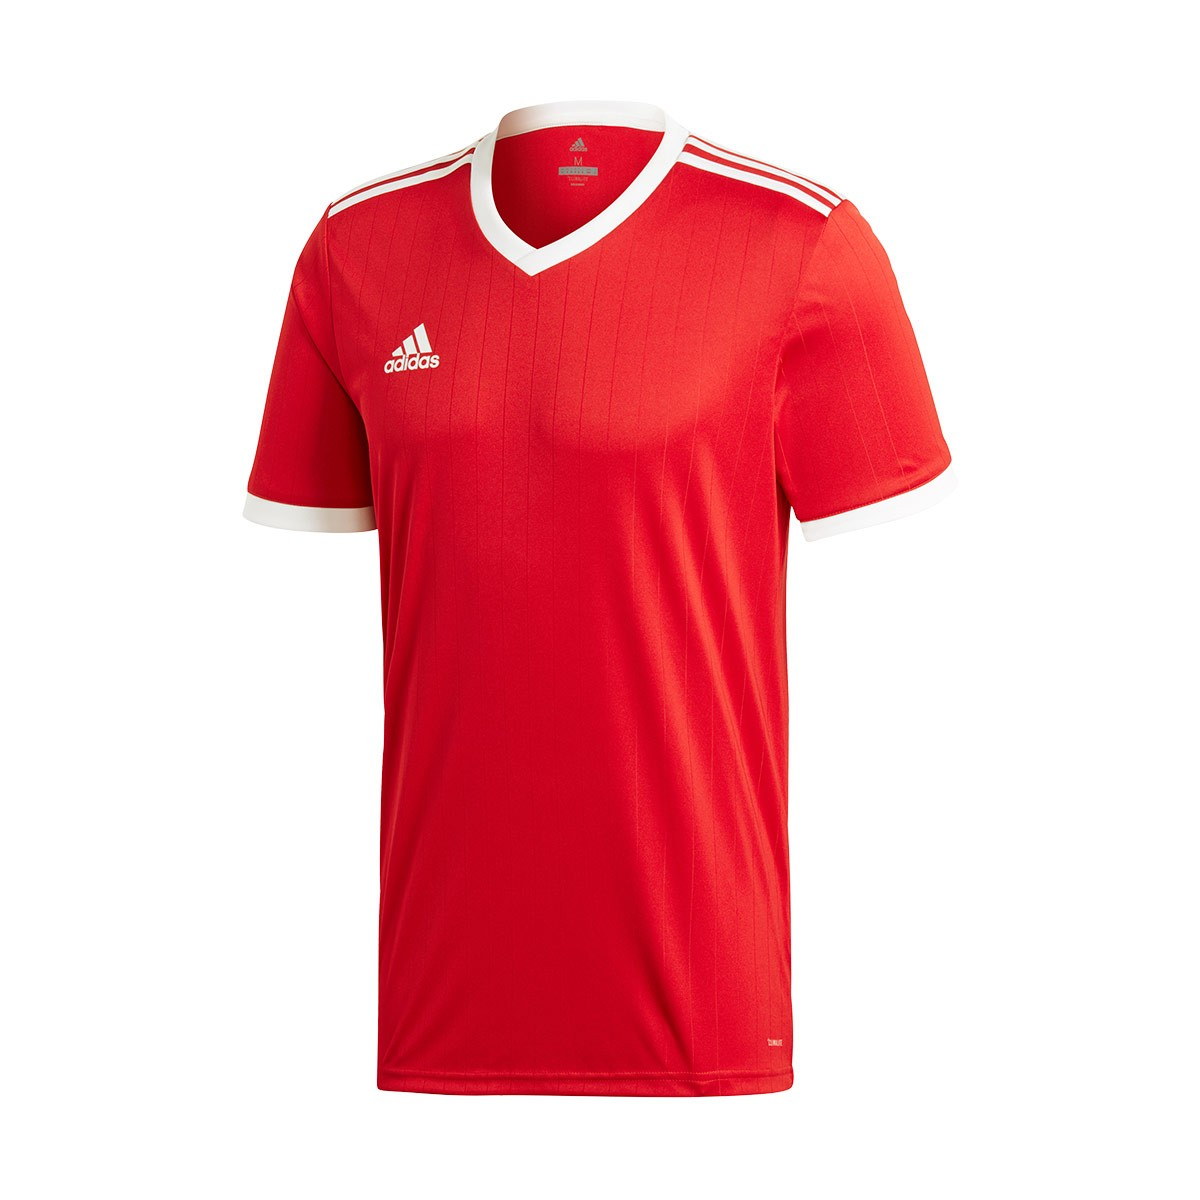 516258f05 Jersey adidas Tabela 18 m/c Power red-White - Football store Fútbol ...